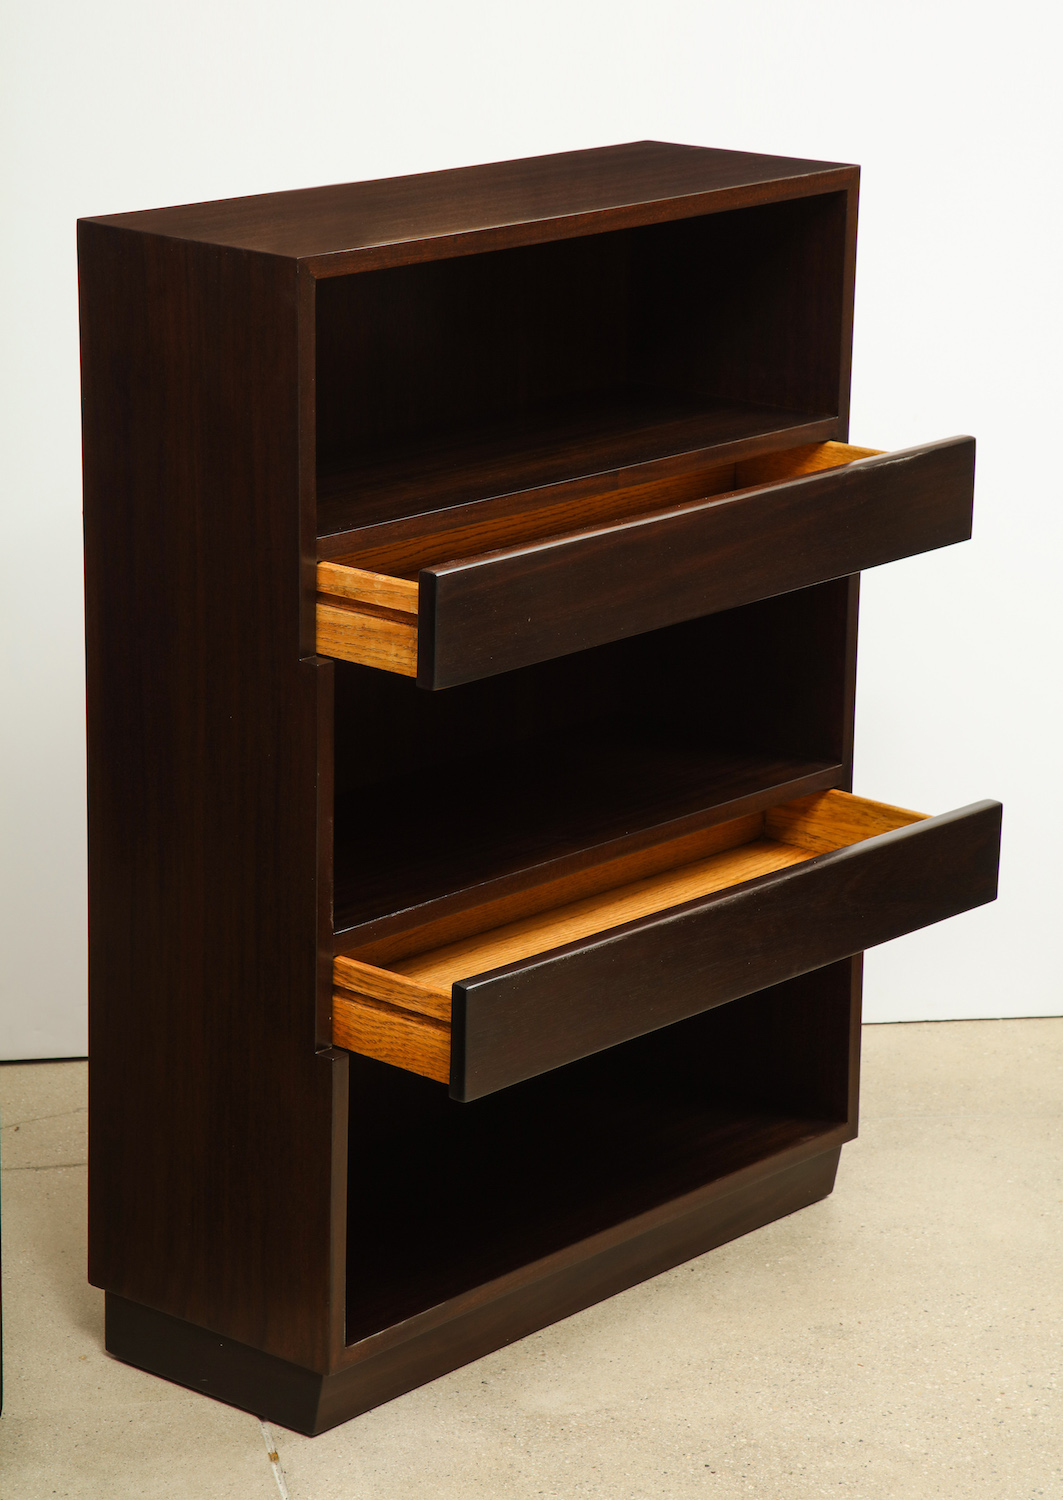 wormley dunbar pair of bookcases 3.jpg